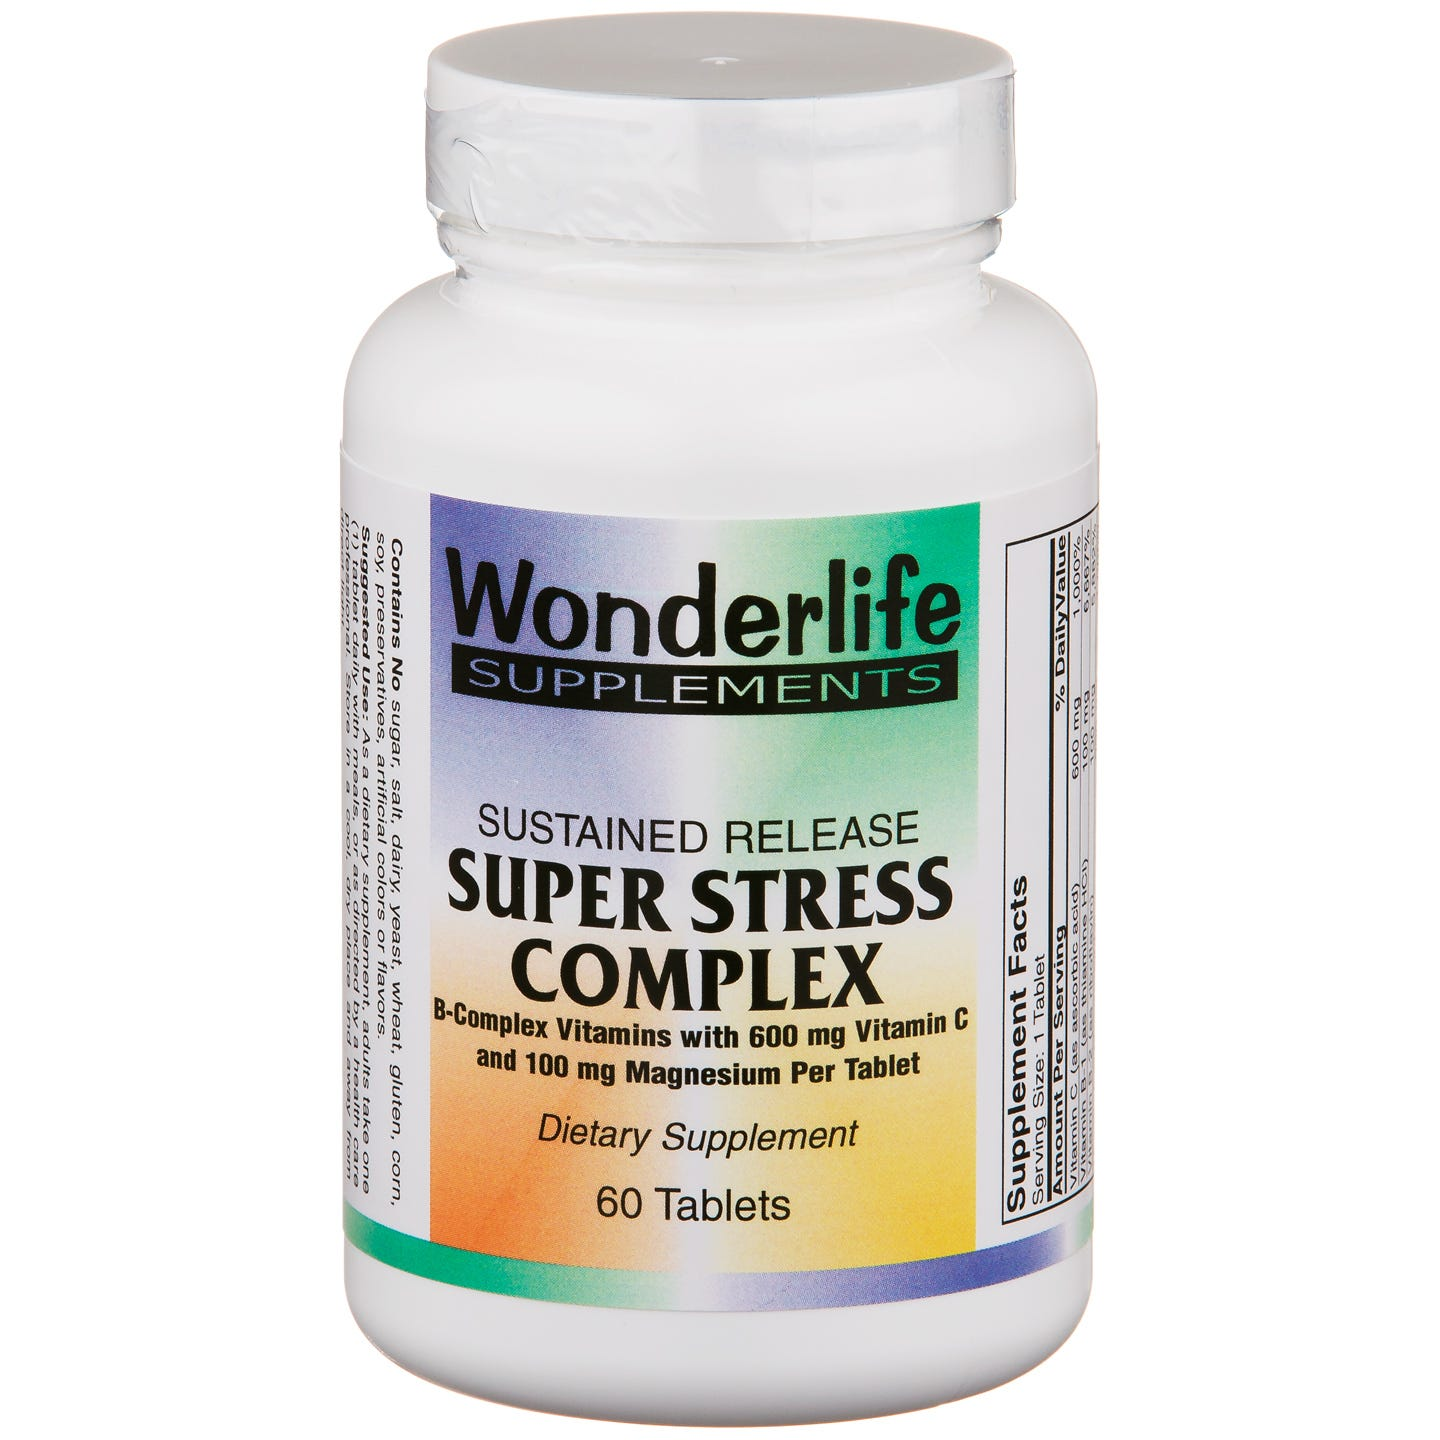 Sustained Release Super Stress Complex (60 ct) - Wonderlife - Rapid Diet Weight Loss Products Shop